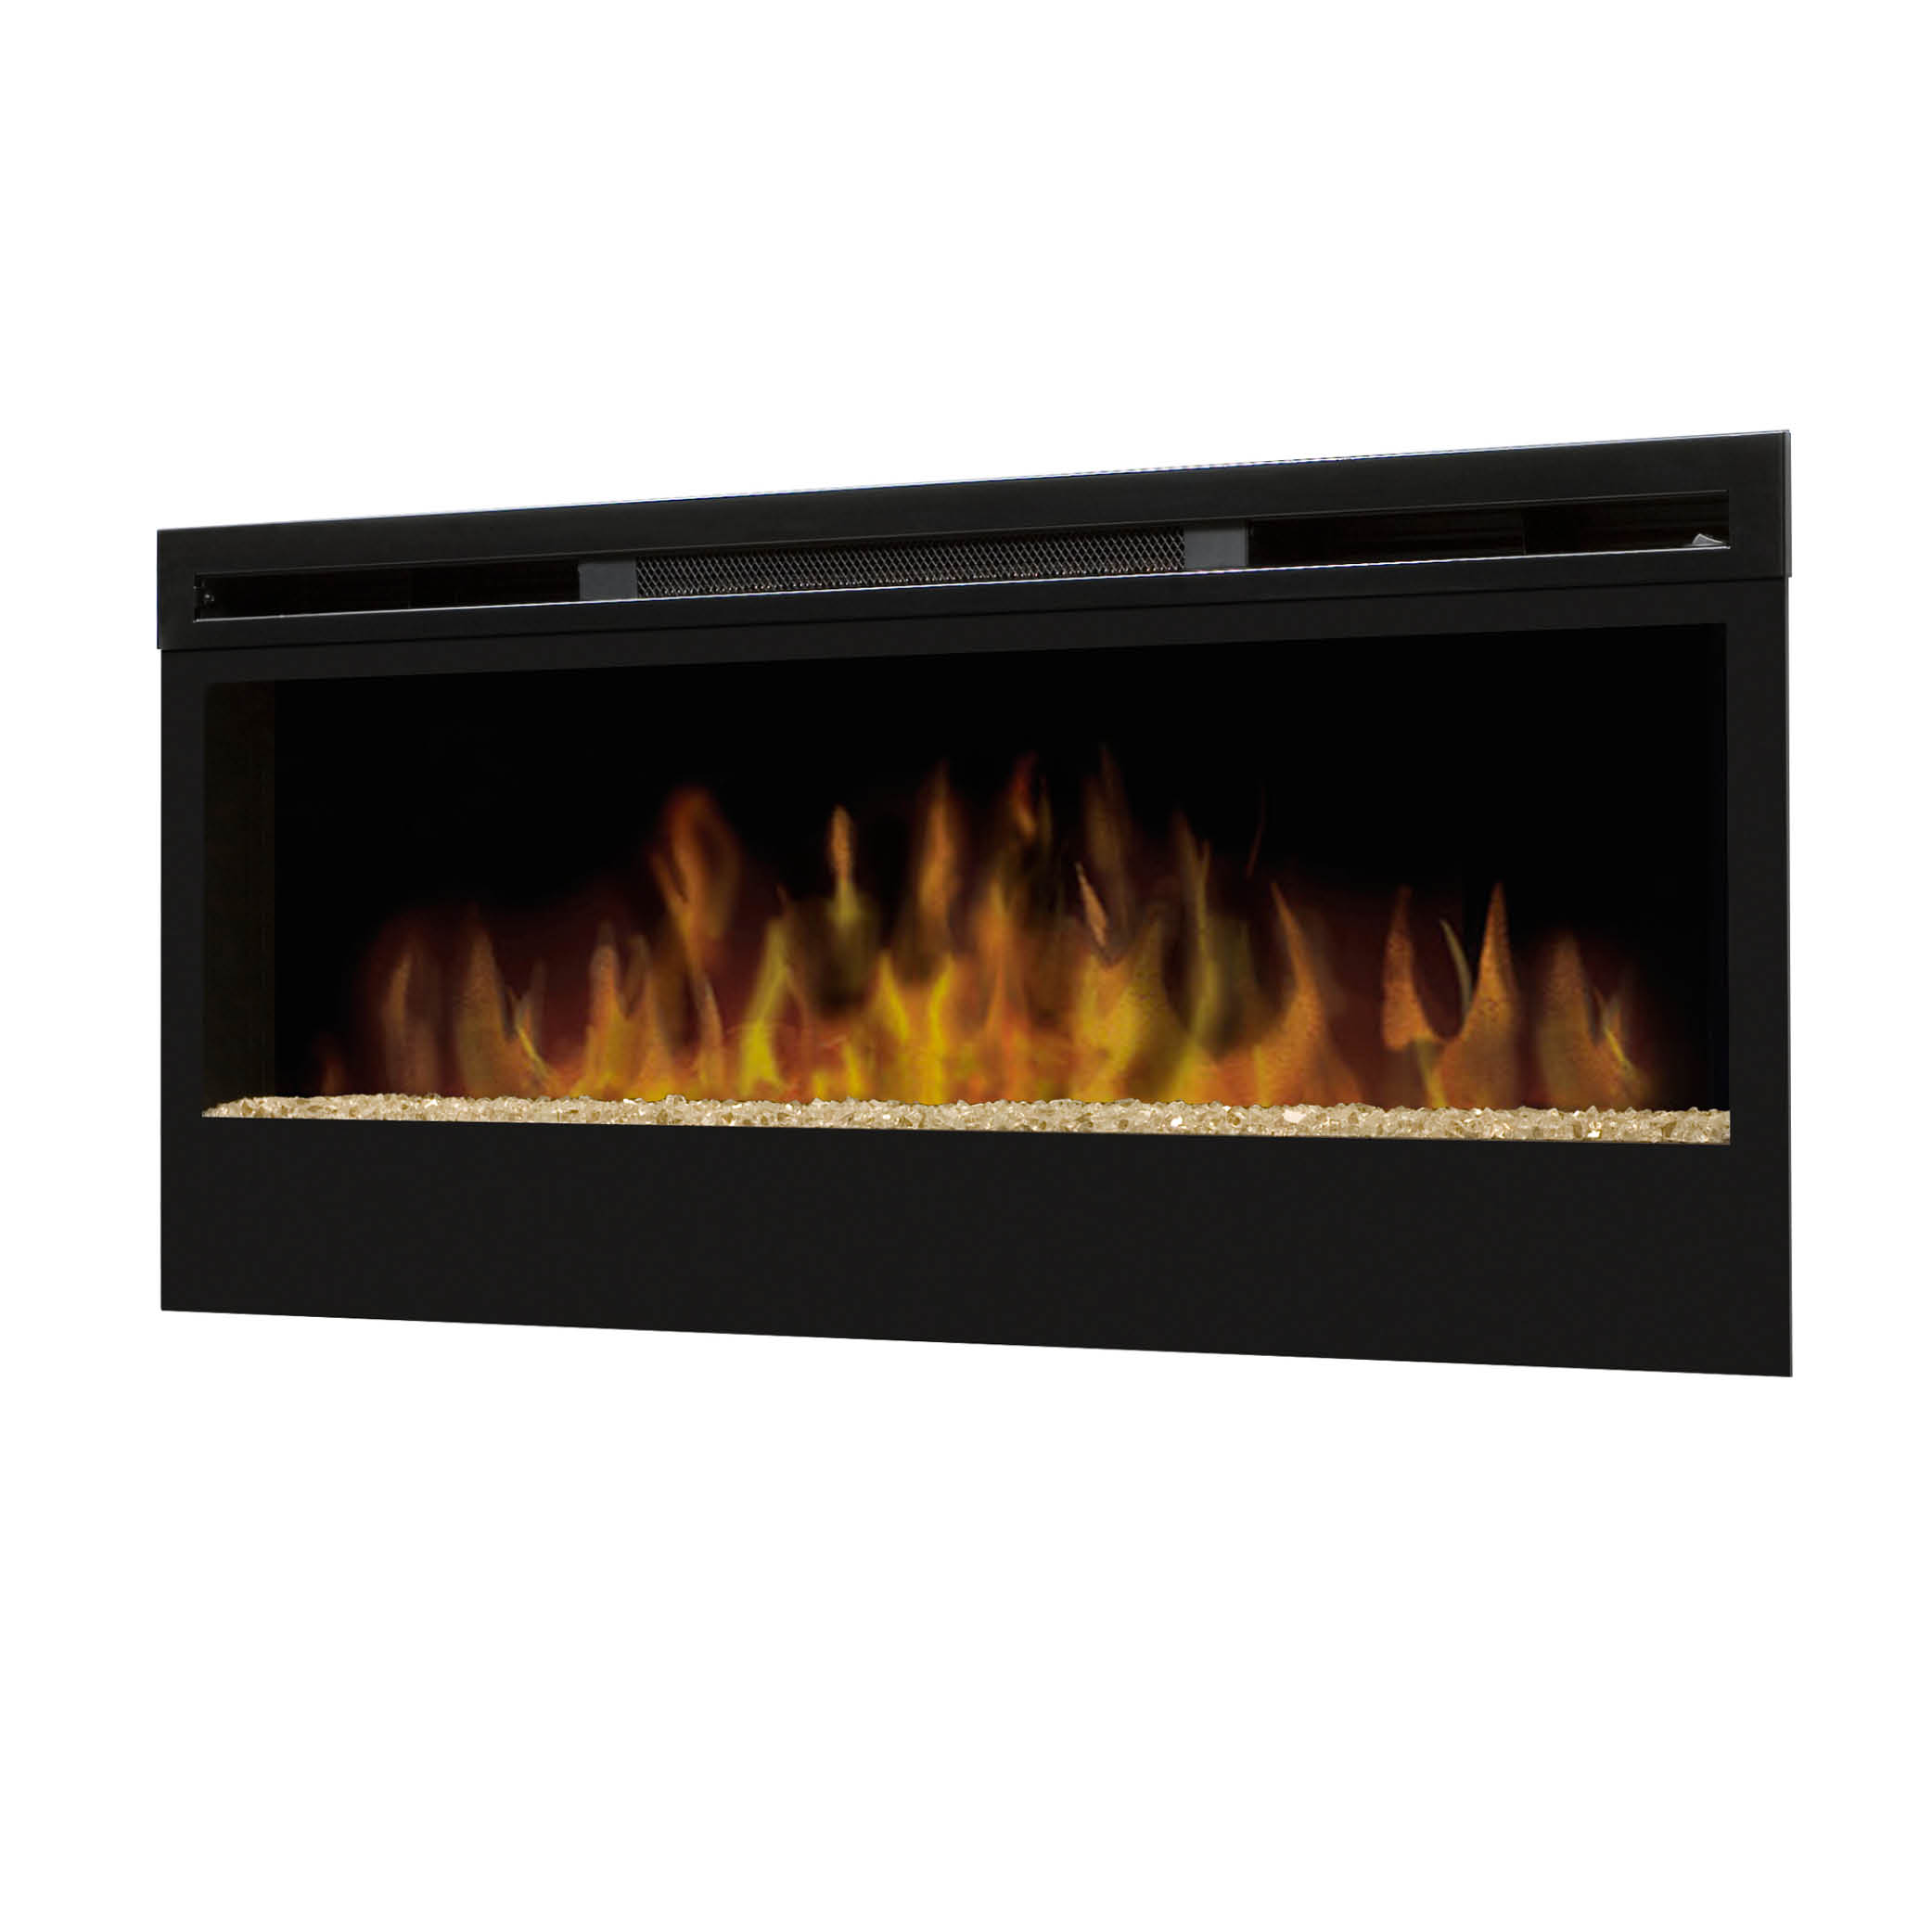 Synergy wall mounted electric fire with glass flame bed for Fireplace bed